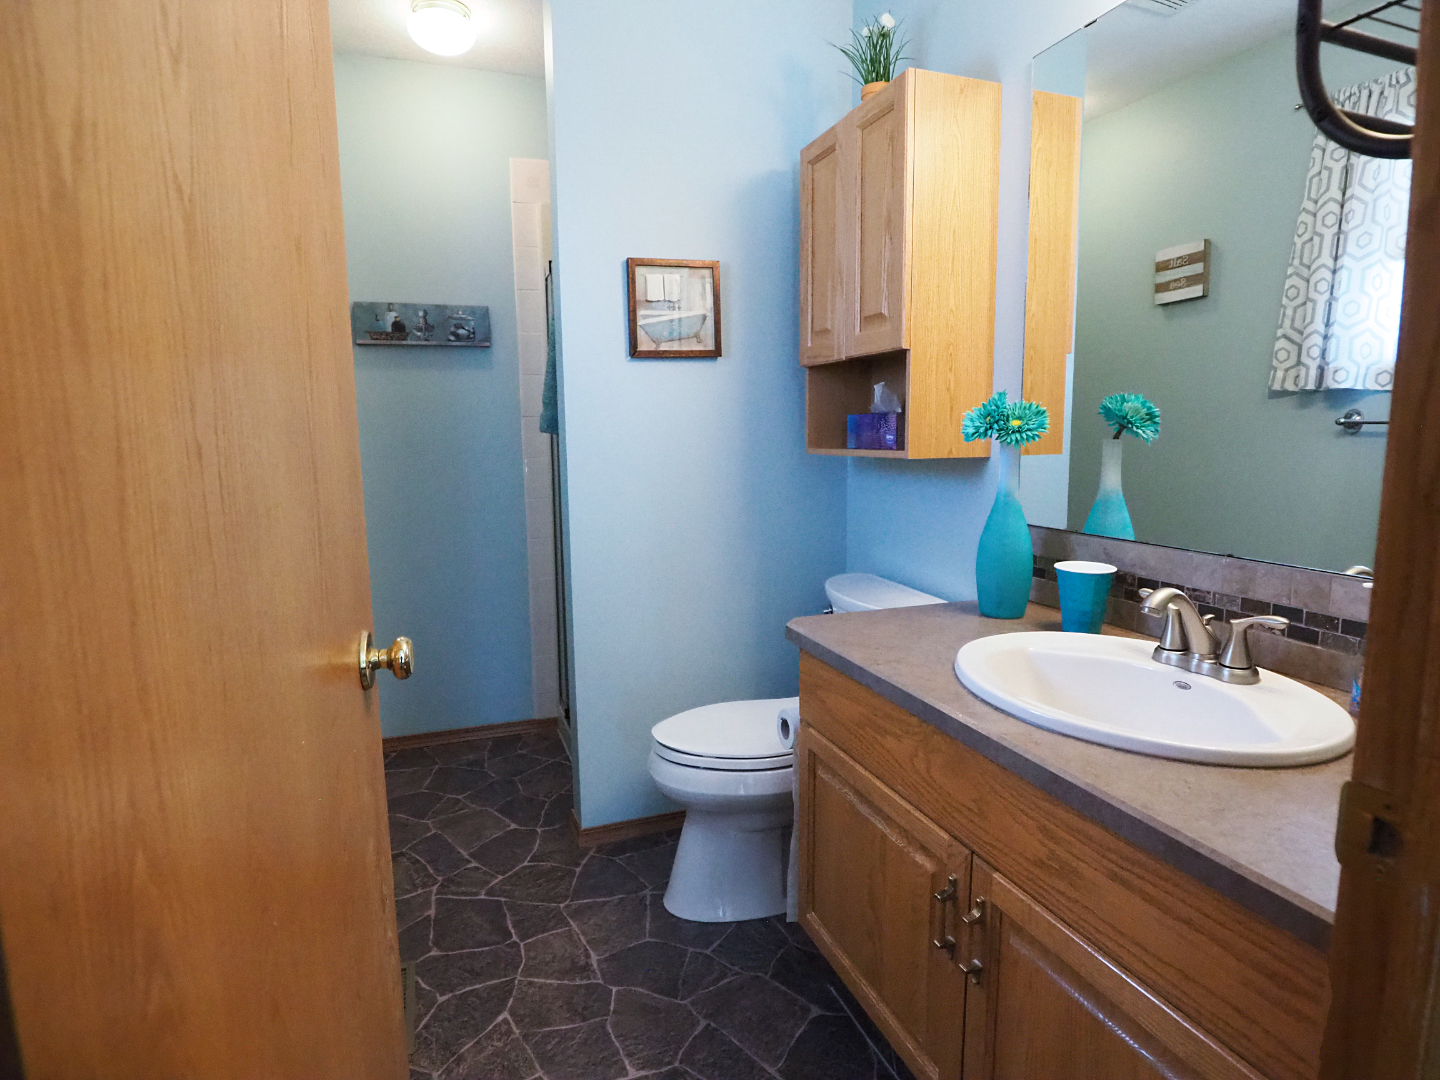 66 Excell Street master ensuite